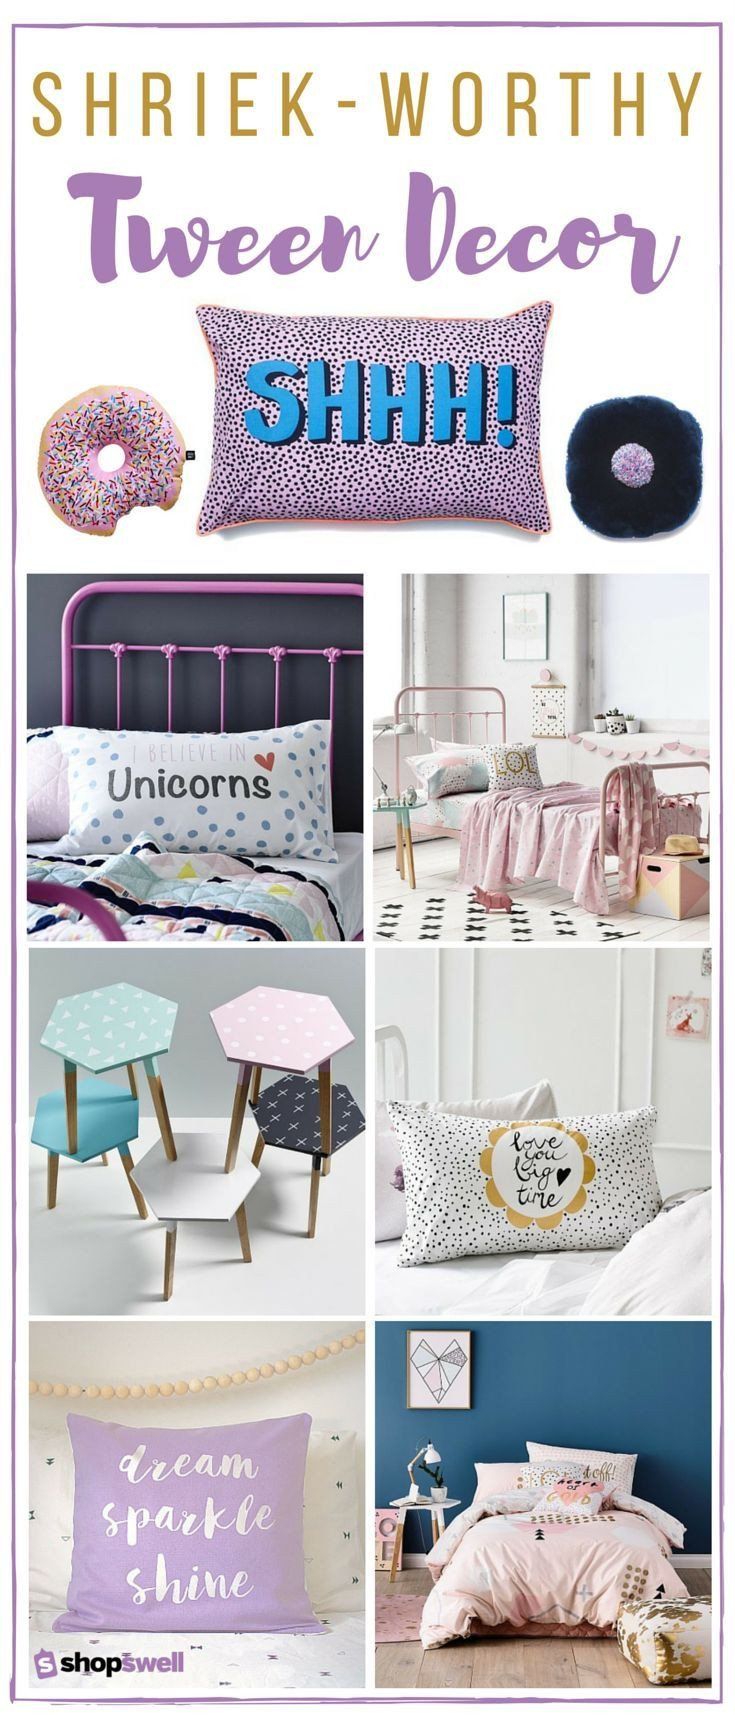 Room Decor Ideas for Tweens Best Of 26 Shriek Worthy Decor Essentials for the Tween Bedroom Home Decor & Furniture